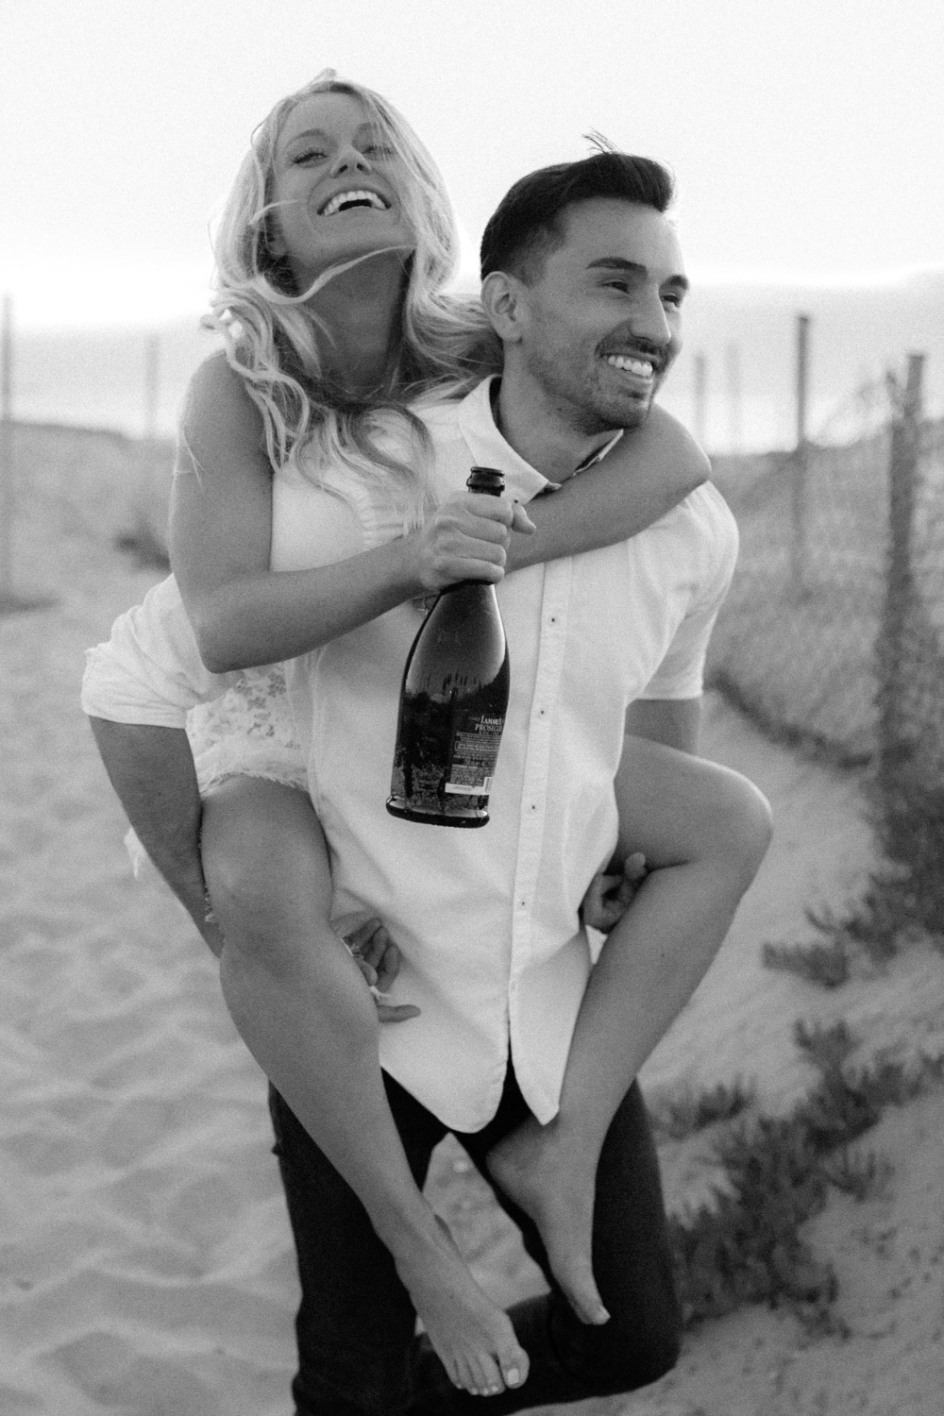 southern-california-engagement-photography-michael-segal-52